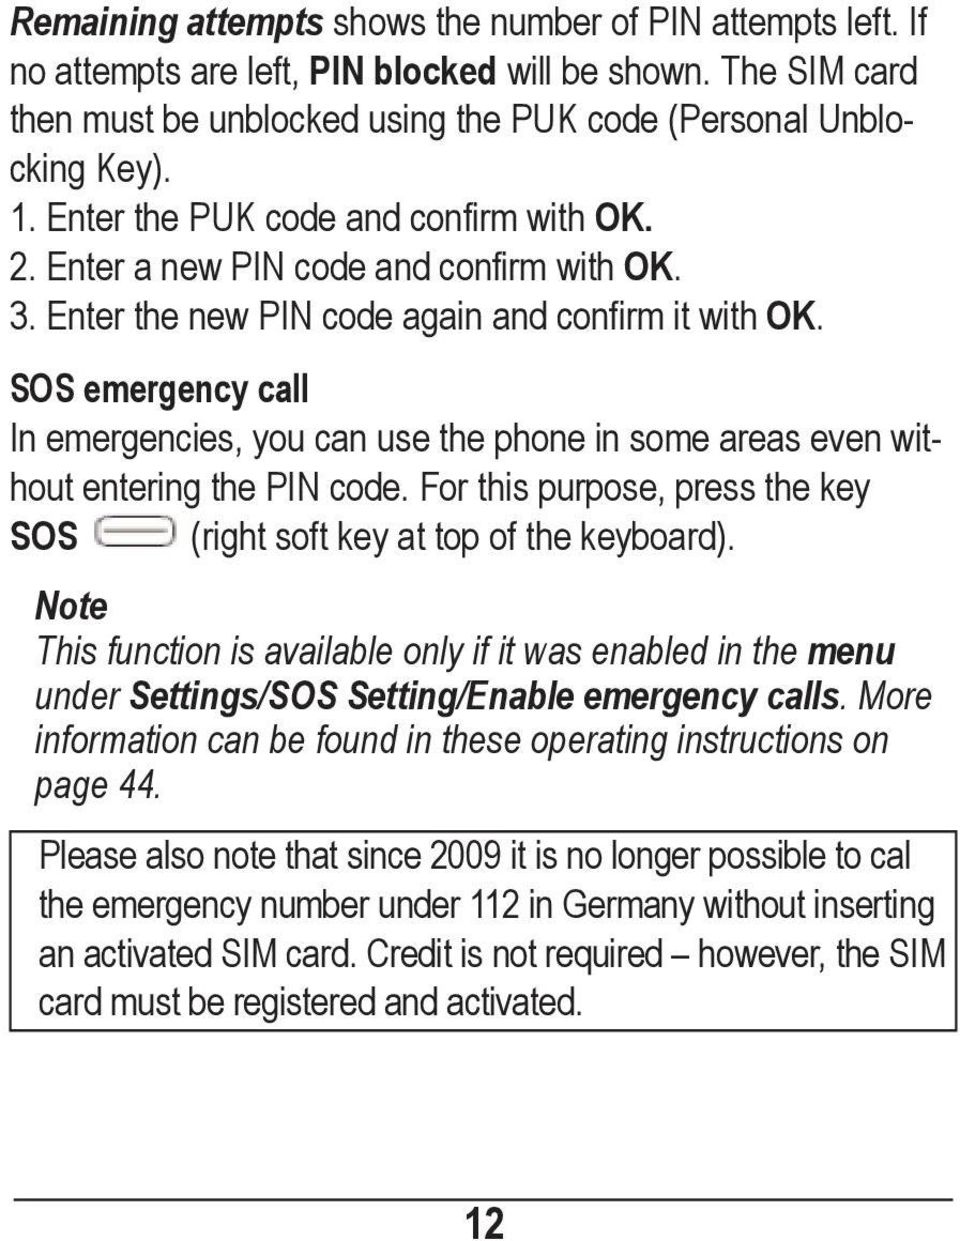 SOS emergency call In emergencies, you can use the phone in some areas even without entering the PIN code. For this purpose, press the key SOS (right soft key at top of the keyboard).